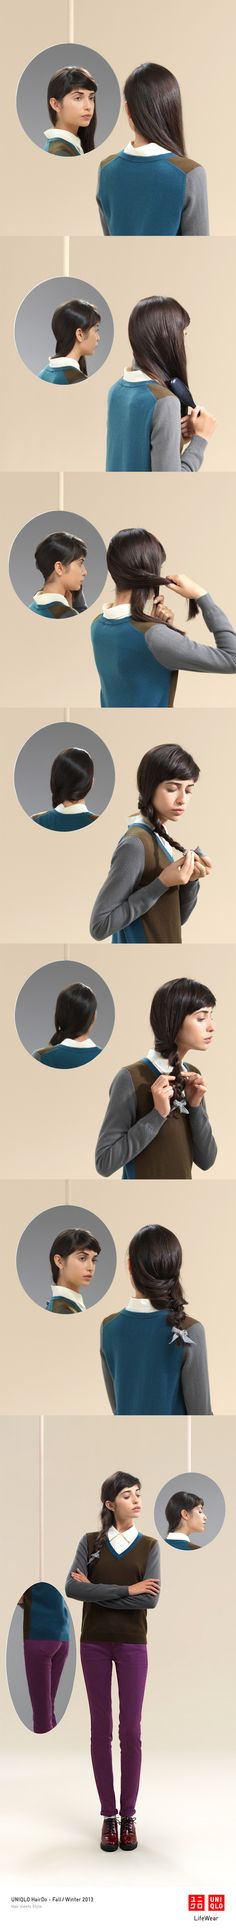 """""""THE TWIST BRAID"""" : Our ultra stretch pants, sweater and this textured braid make a great office look. Click the image for DIY instructions! #Braids #DIY #Hair #Hairstyle #Uniqlo #FW2013 #HairDo"""